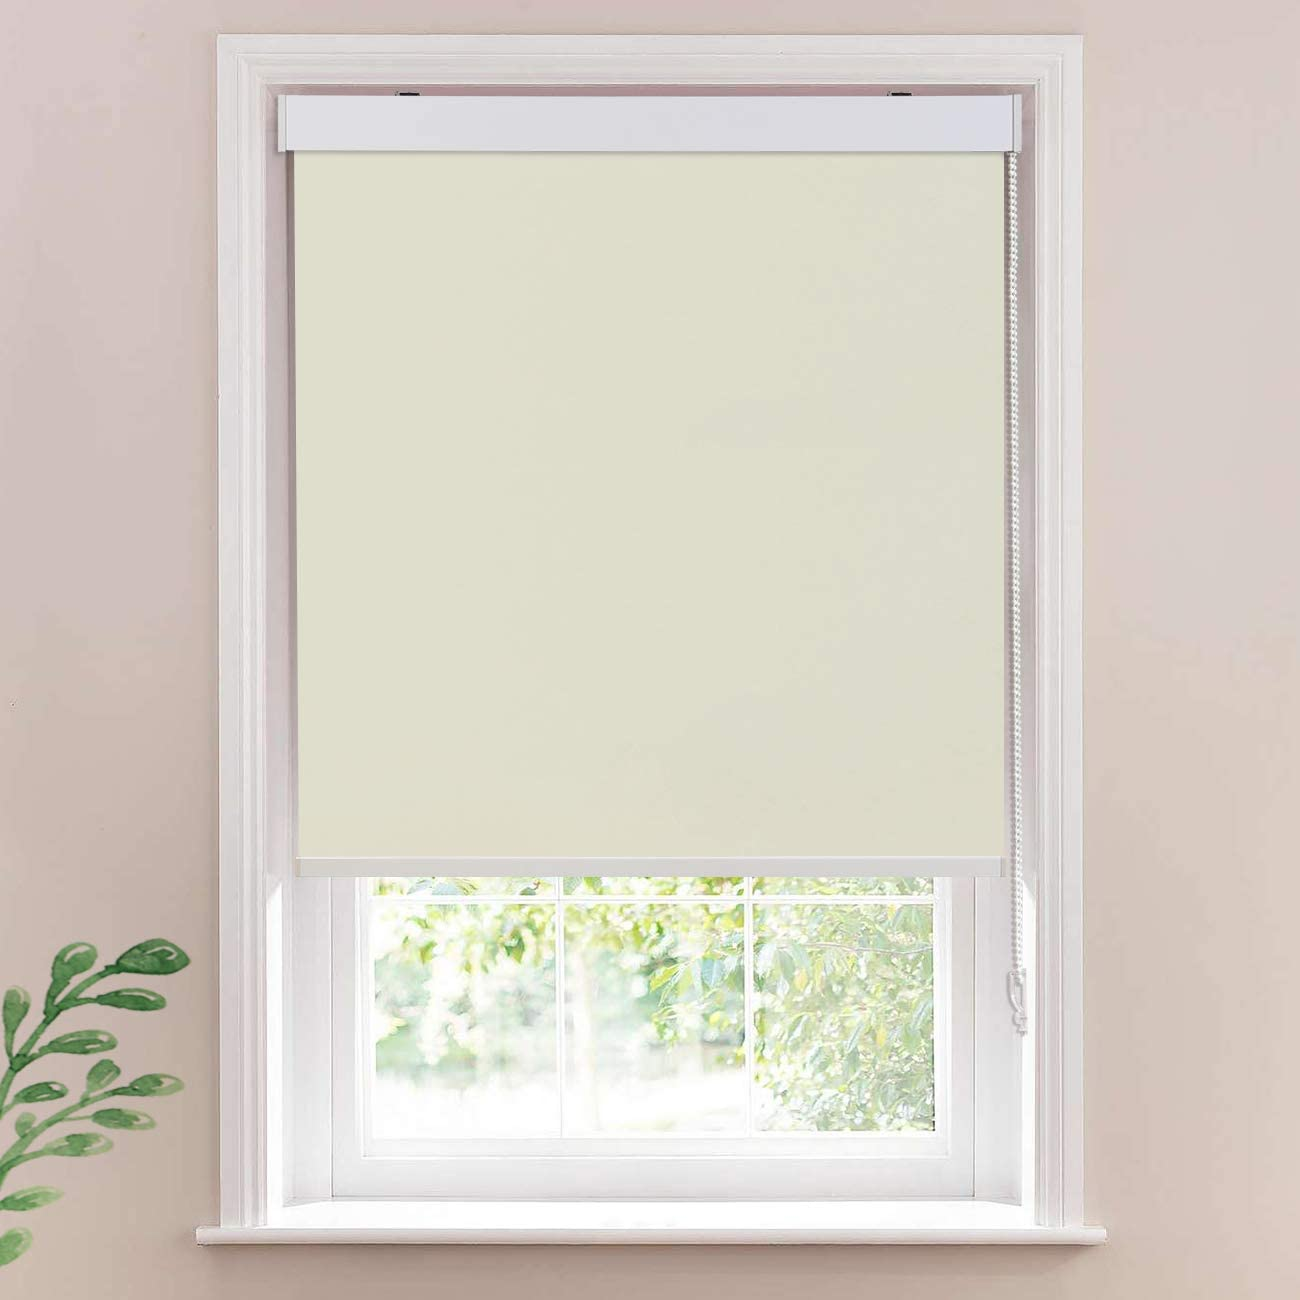 Keego Window Roller Blinds Office Blackout Window Shades, Room Darkning Bedroom Privacy Shades Thermal Insulated for Living Room Khaki 100 Blackout,40 W x 76 H Inch